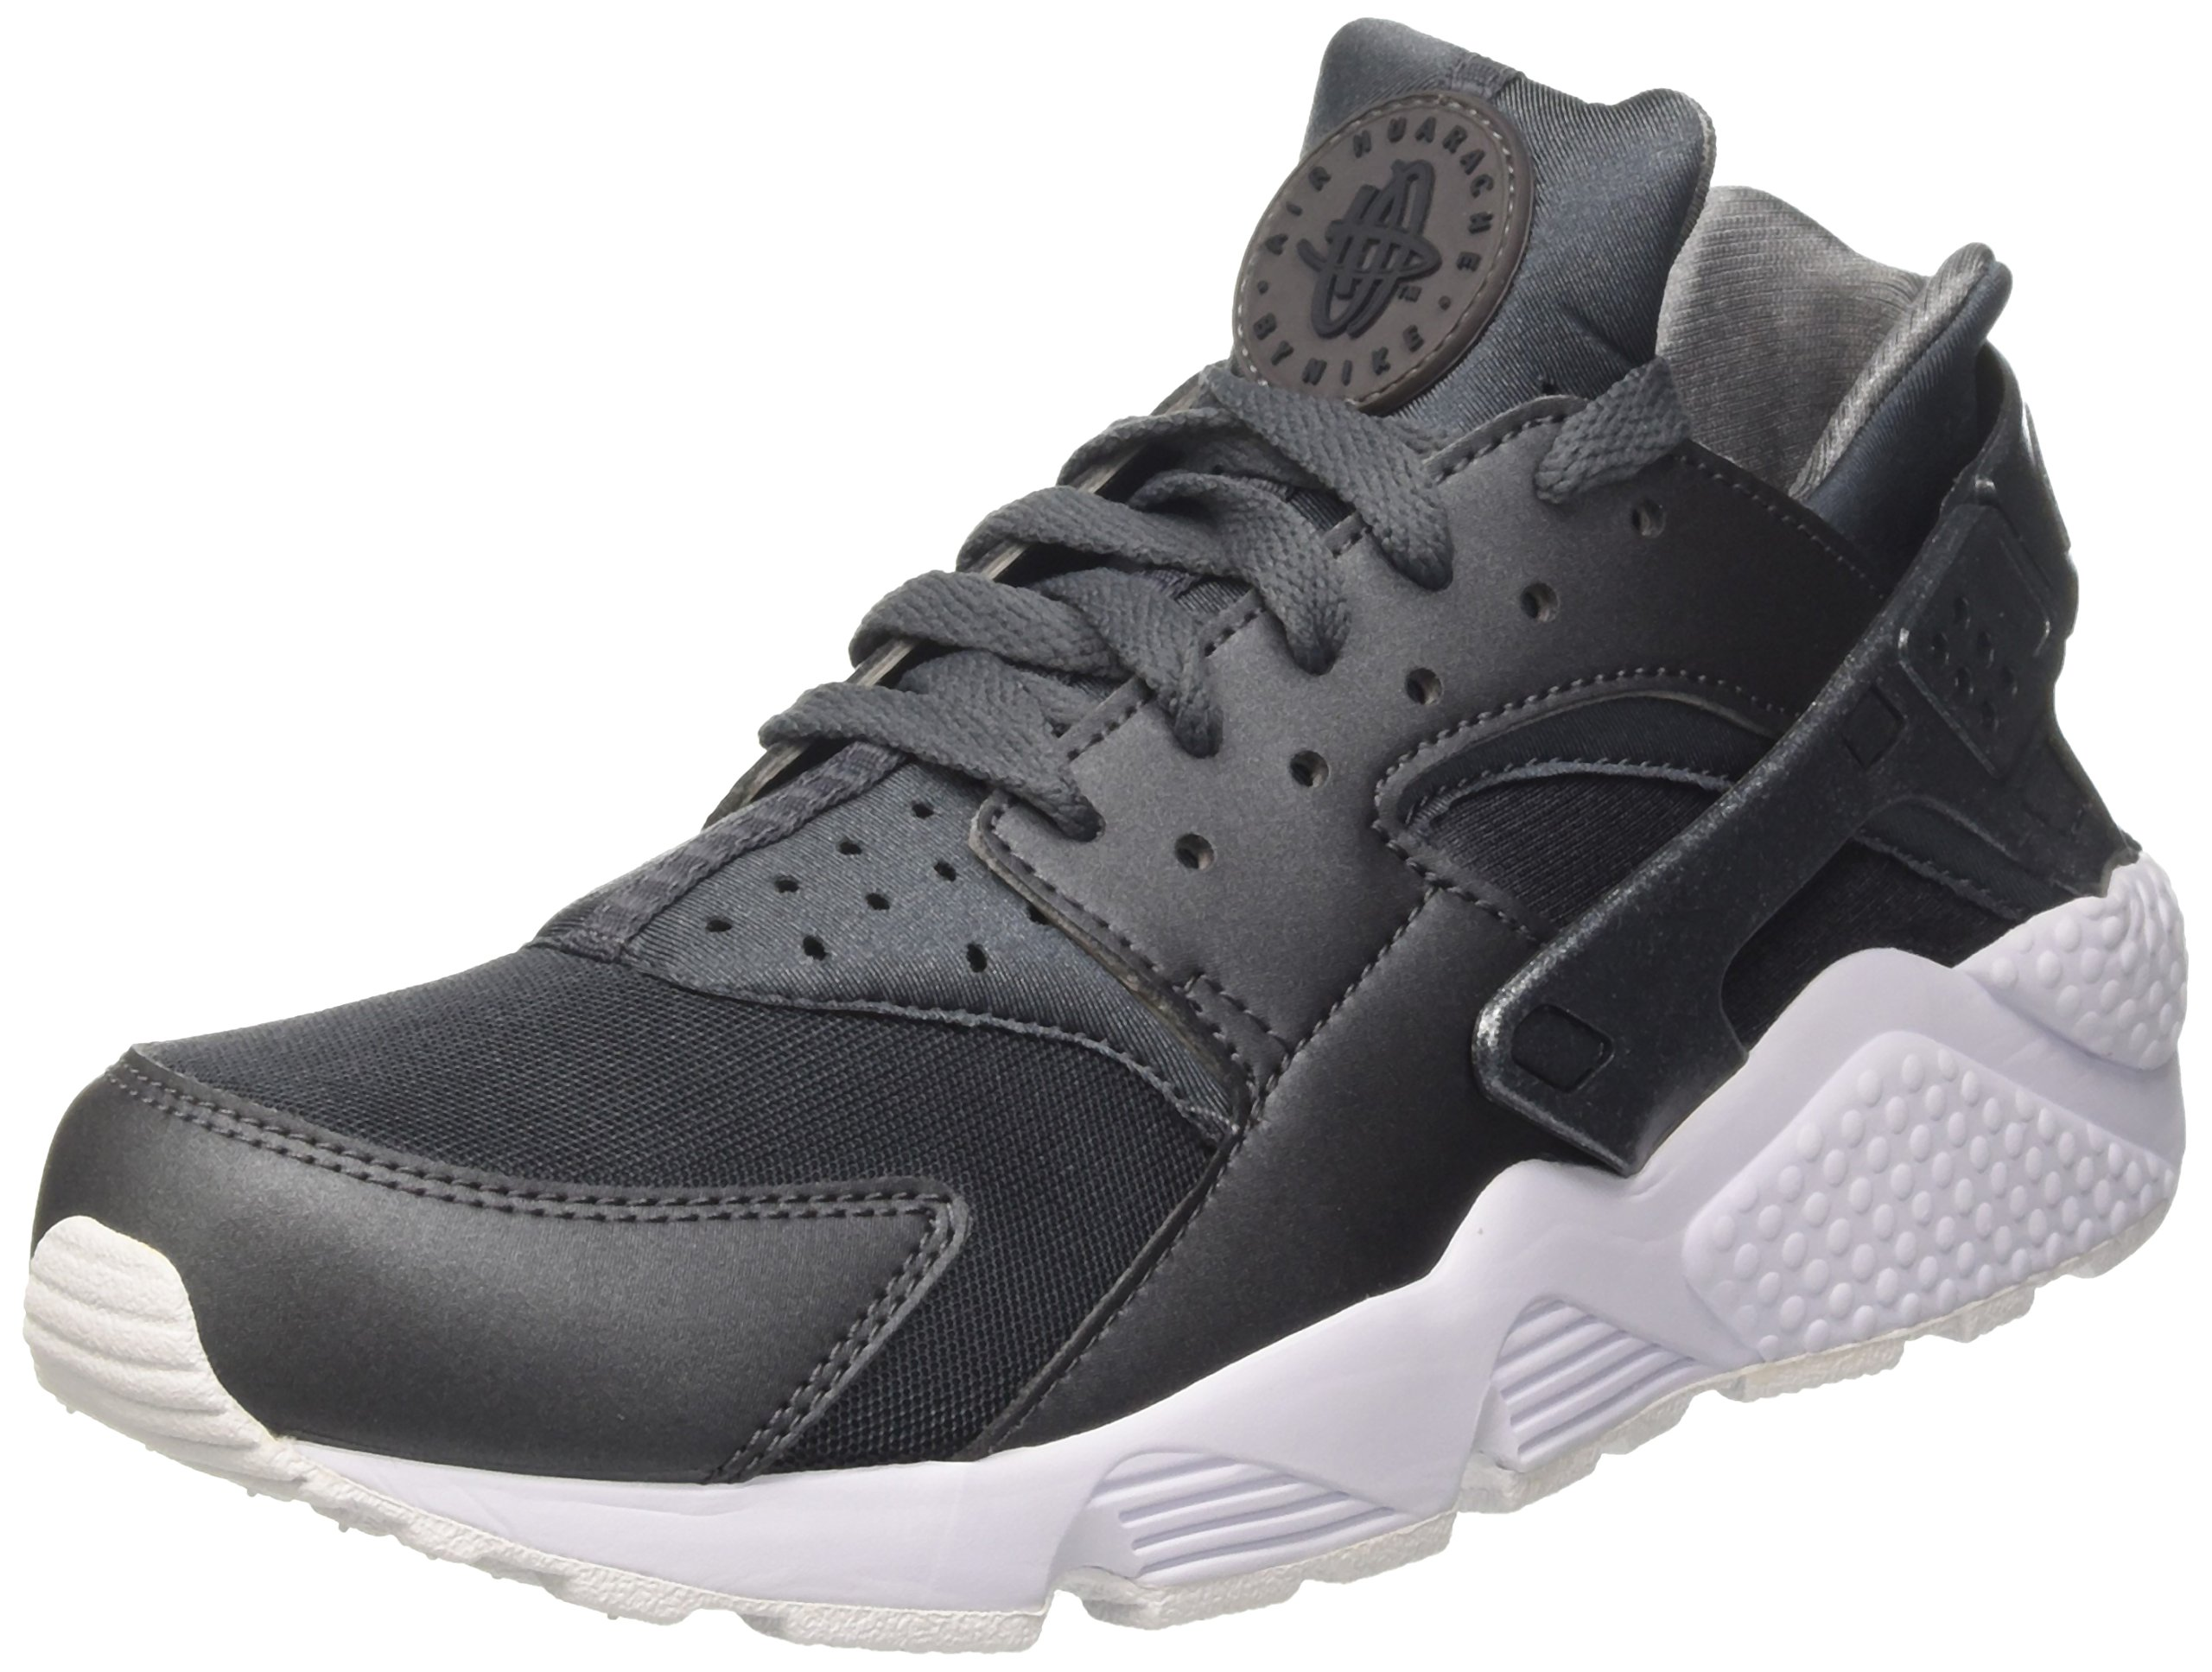 promo code 2df15 4b1aa Galleon - Nike Air Huarache Run PRM Mens Running Shoes (10.5 D(M) US)